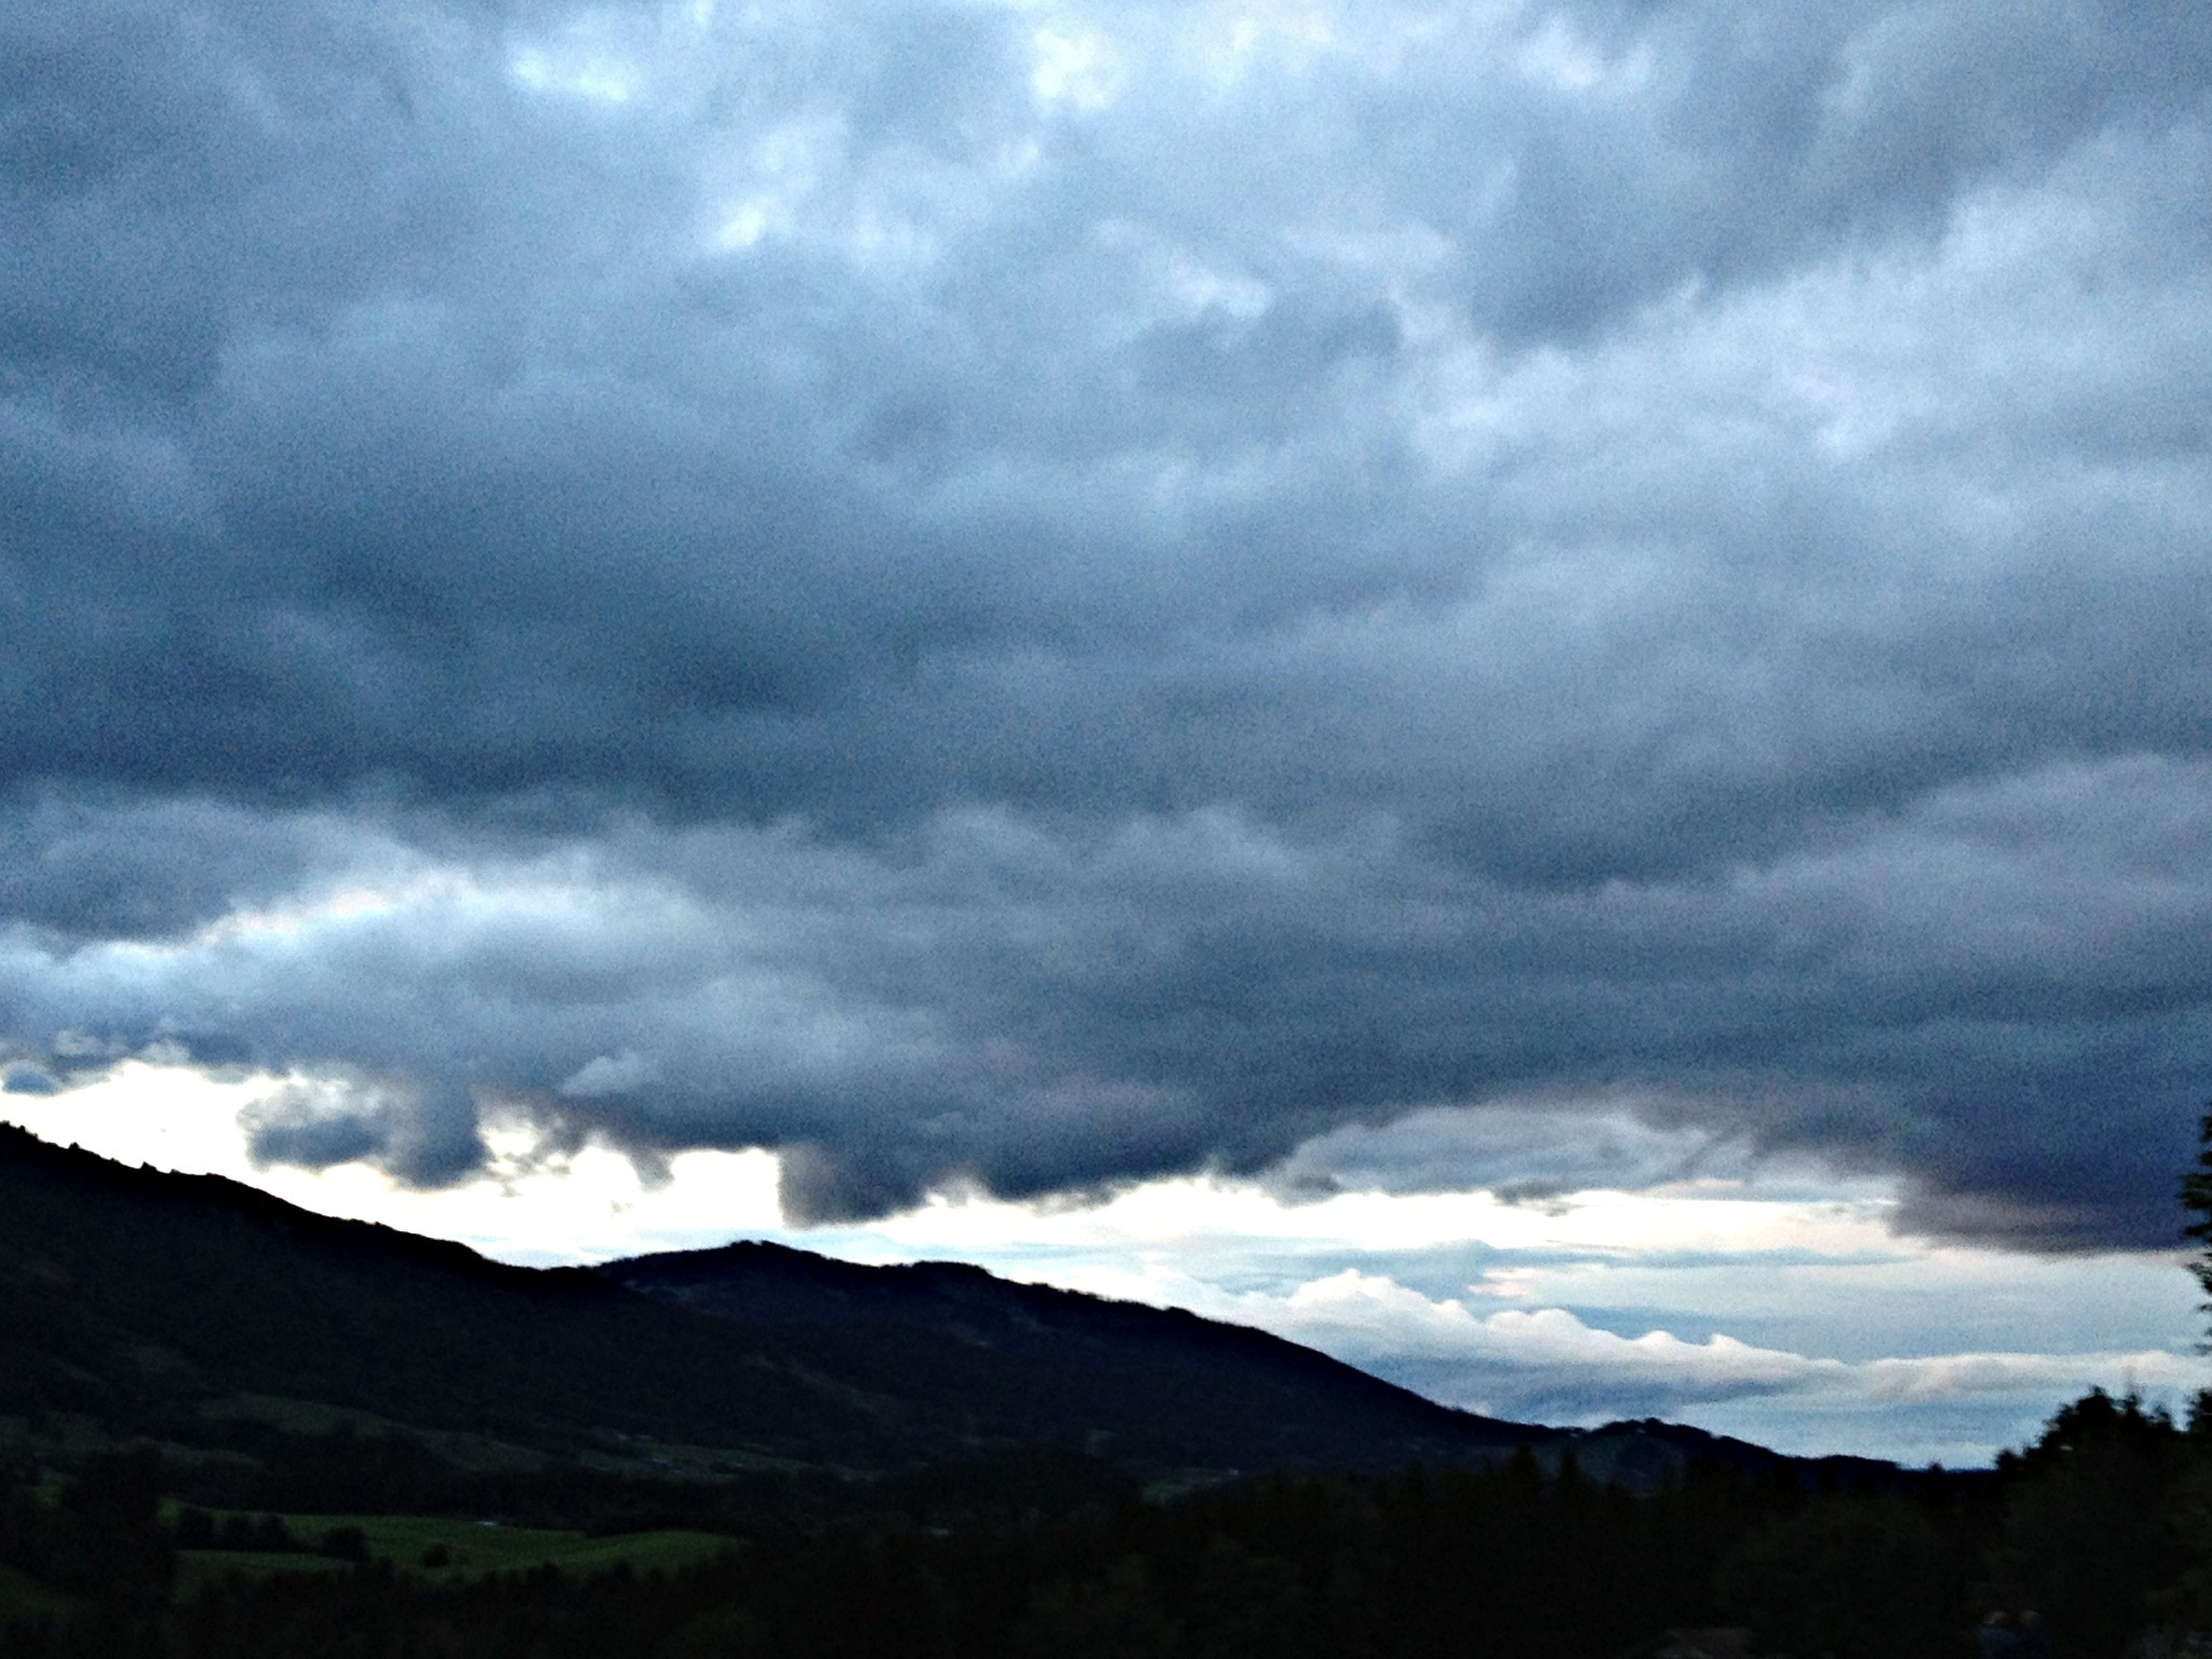 sky, mountain, cloud - sky, cloudy, scenics, tranquil scene, tranquility, beauty in nature, mountain range, weather, silhouette, nature, overcast, cloud, landscape, low angle view, cloudscape, storm cloud, dusk, idyllic